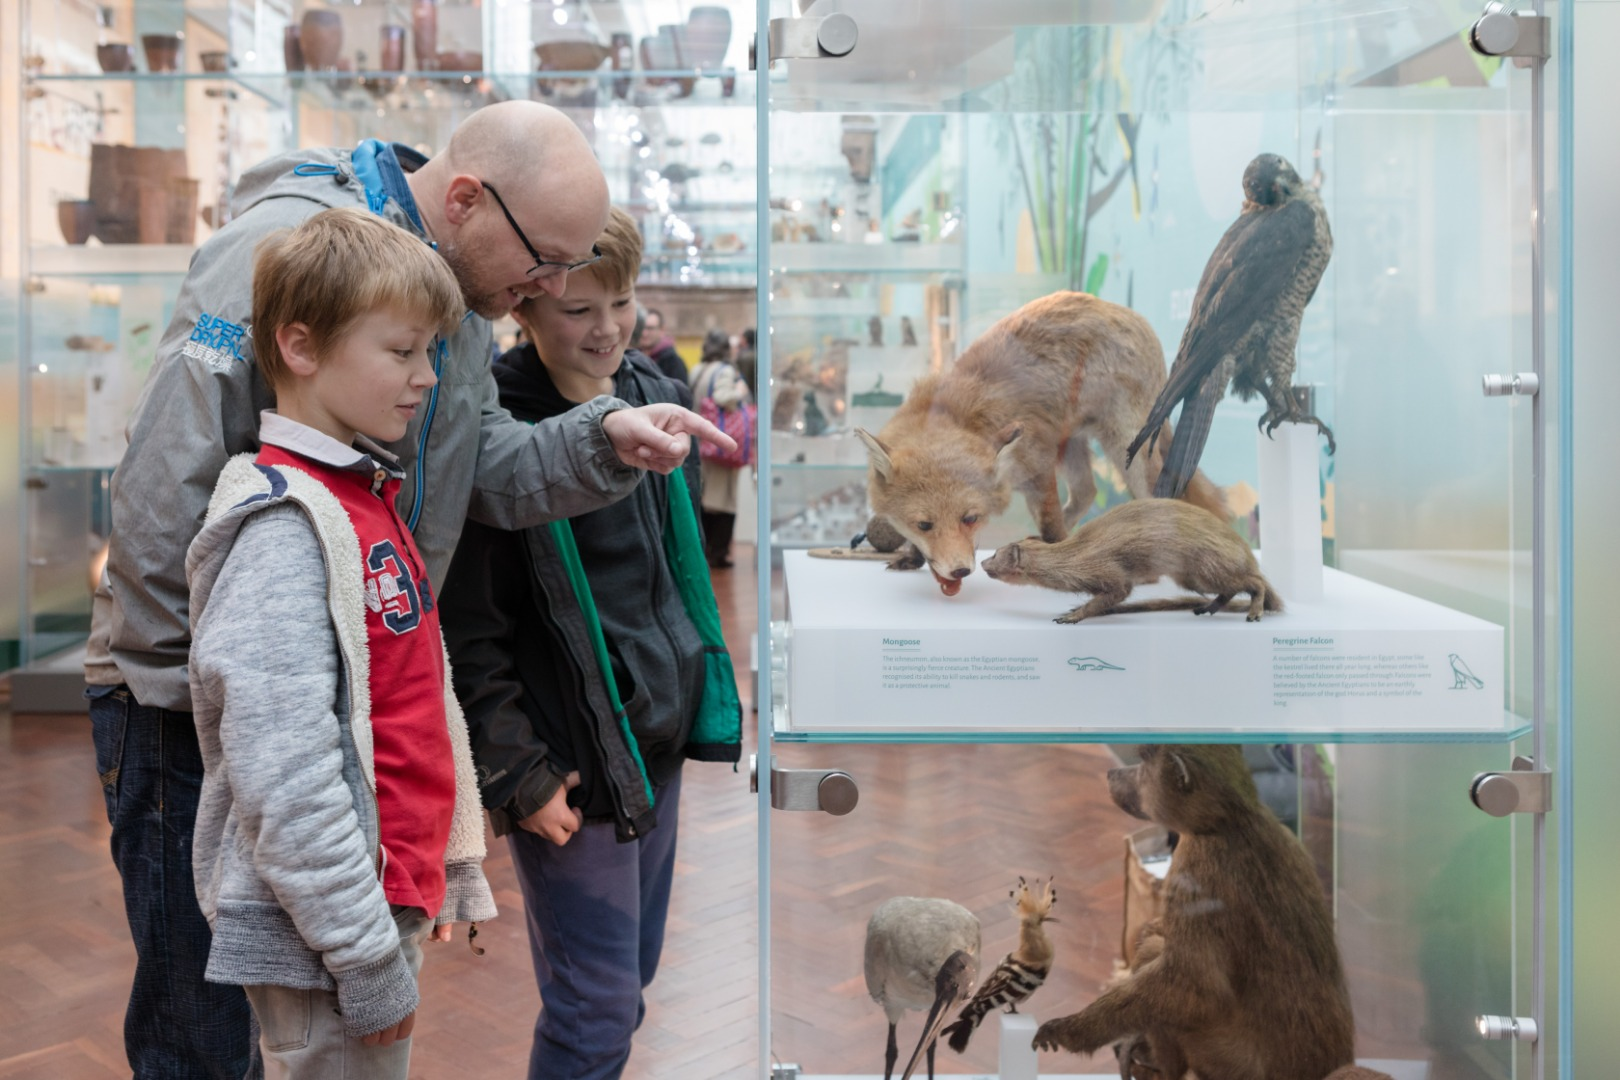 Party time as Bolton Museum welcomes more than 275,000 visitors